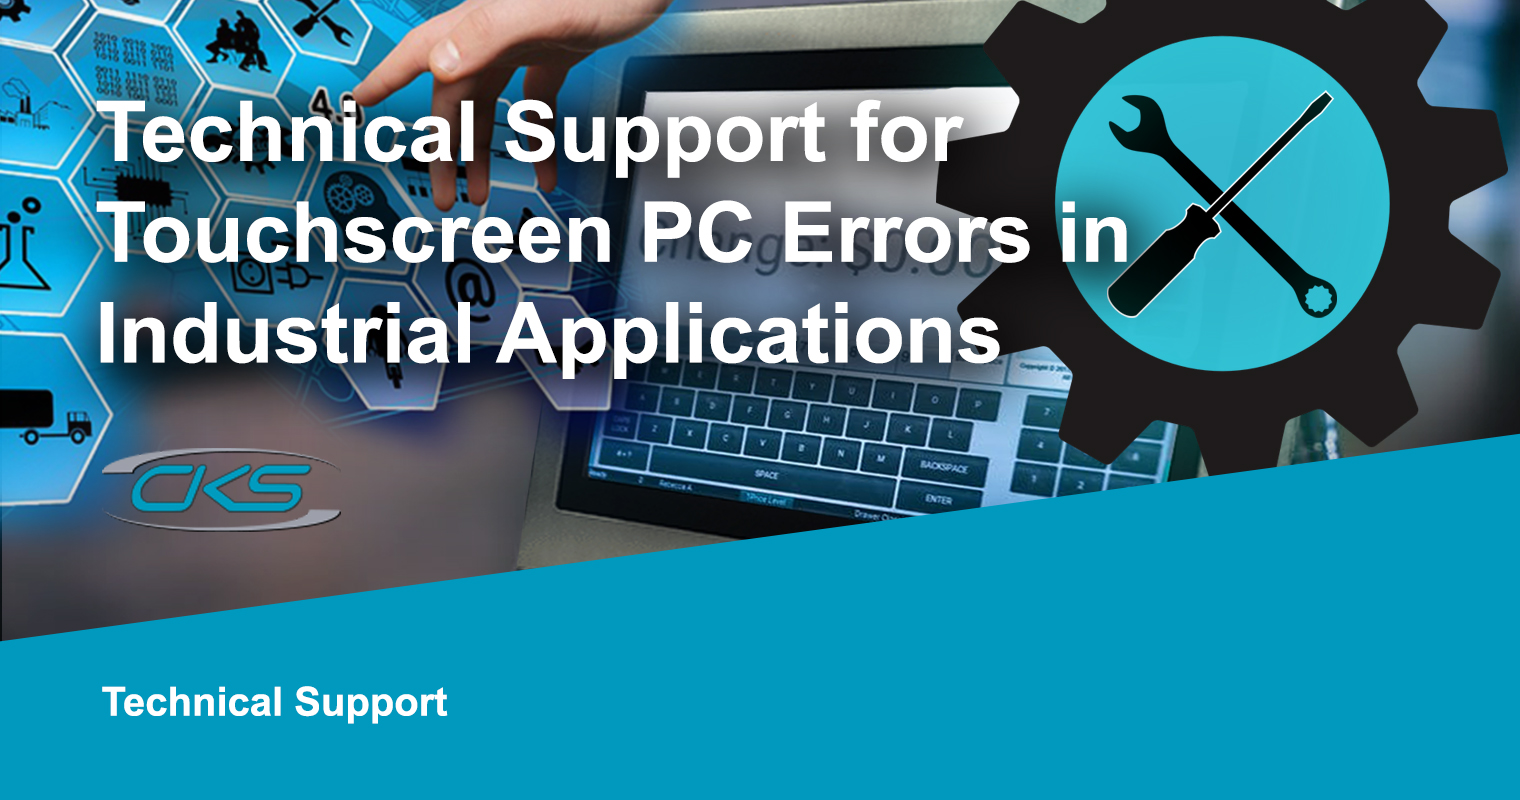 How Technical Support Specialists Help Fix Common Issues on Touchscreen PCs